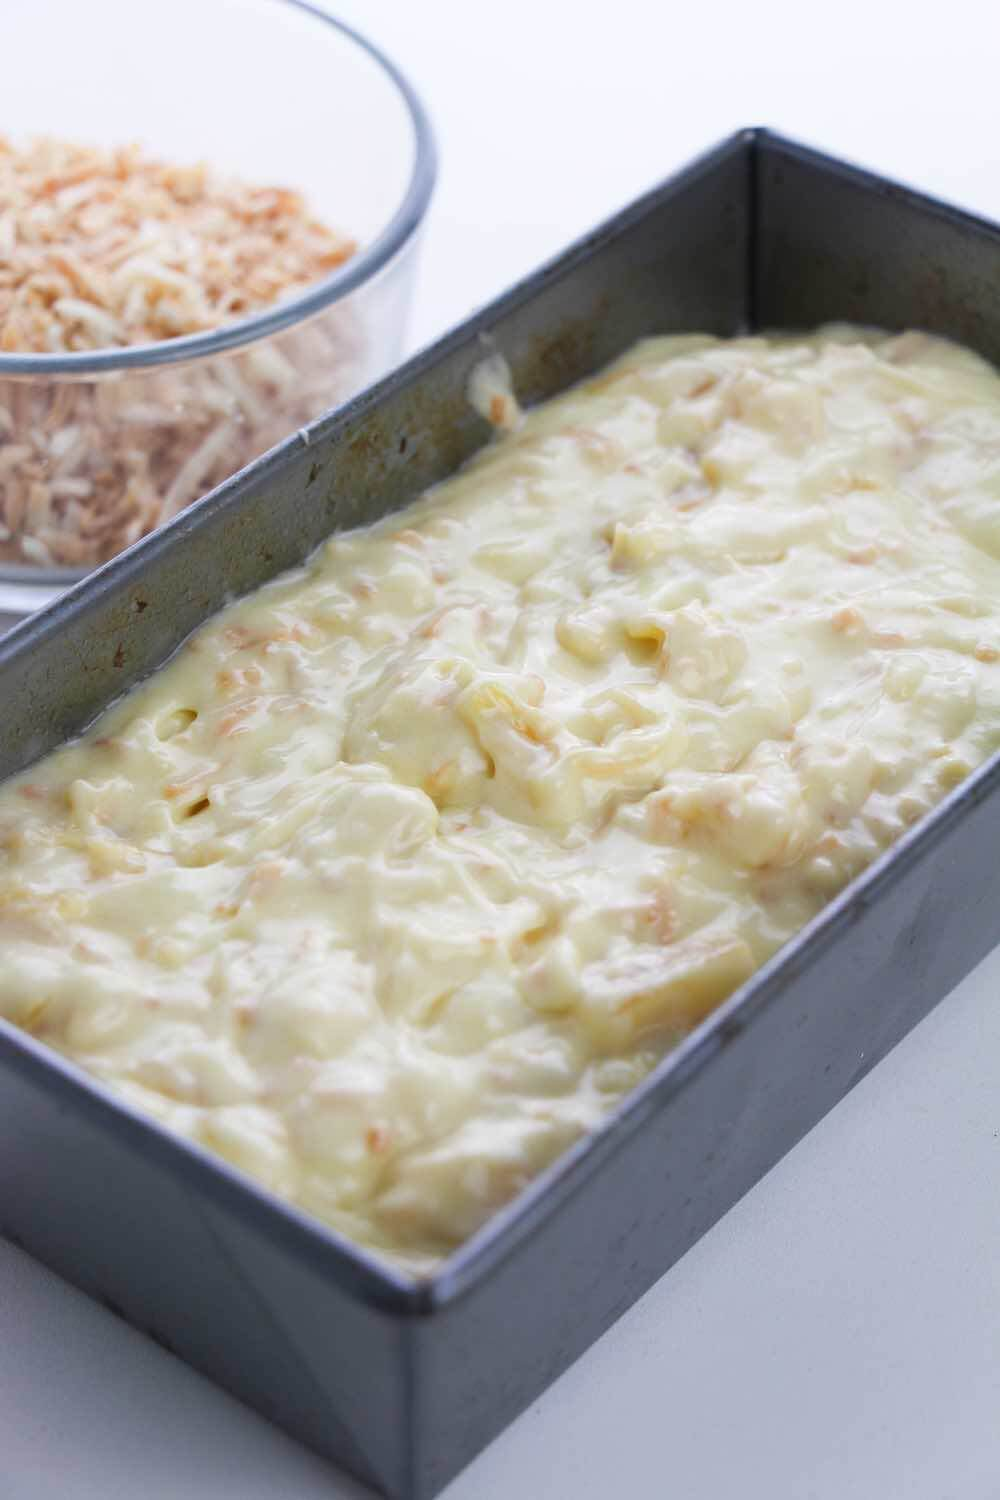 Hawaiian Desserts: Easy Pineapple Coconut Cake Recipe featured by top Hawaii blogger, Hawaii Travel With Kids: Pour the cake batter into the pan. Image of pineapple coconut cake batter in a loaf pan.